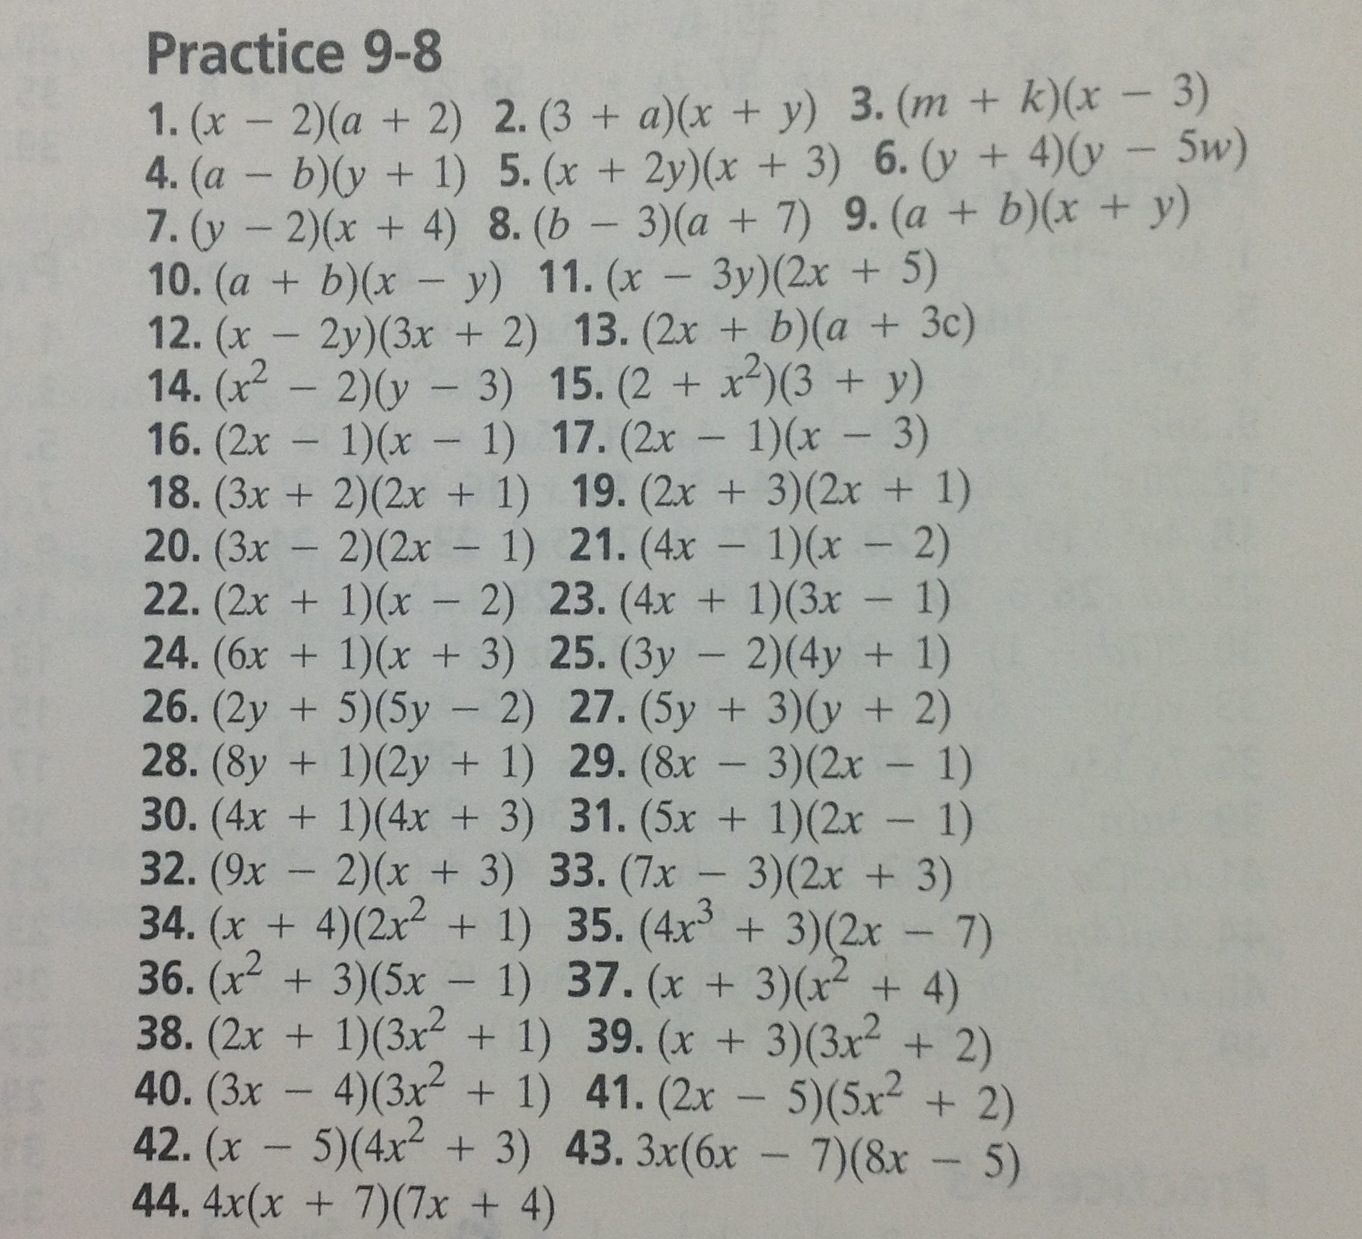 Lesson 9 Homework Practice Answers Need Someone To Write